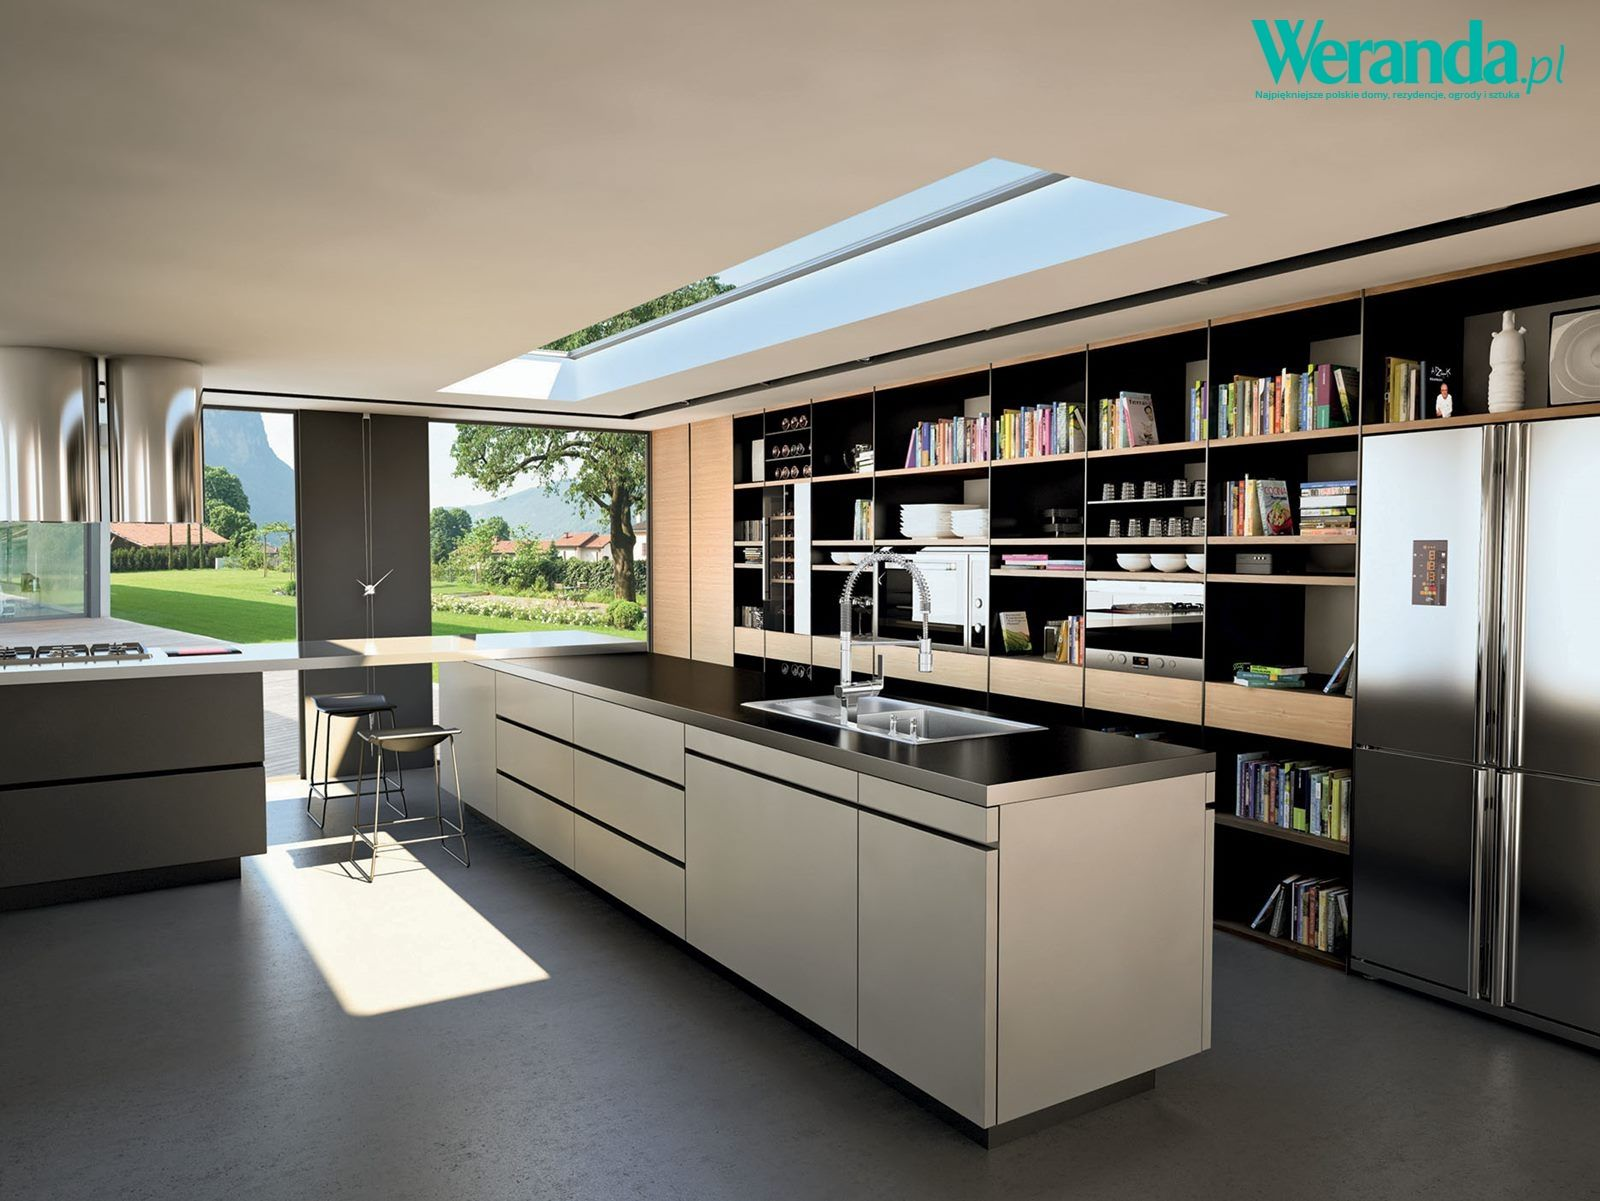 Explore Modern Kitchen Designs, Design Kitchen, And More! Awesome Ideas